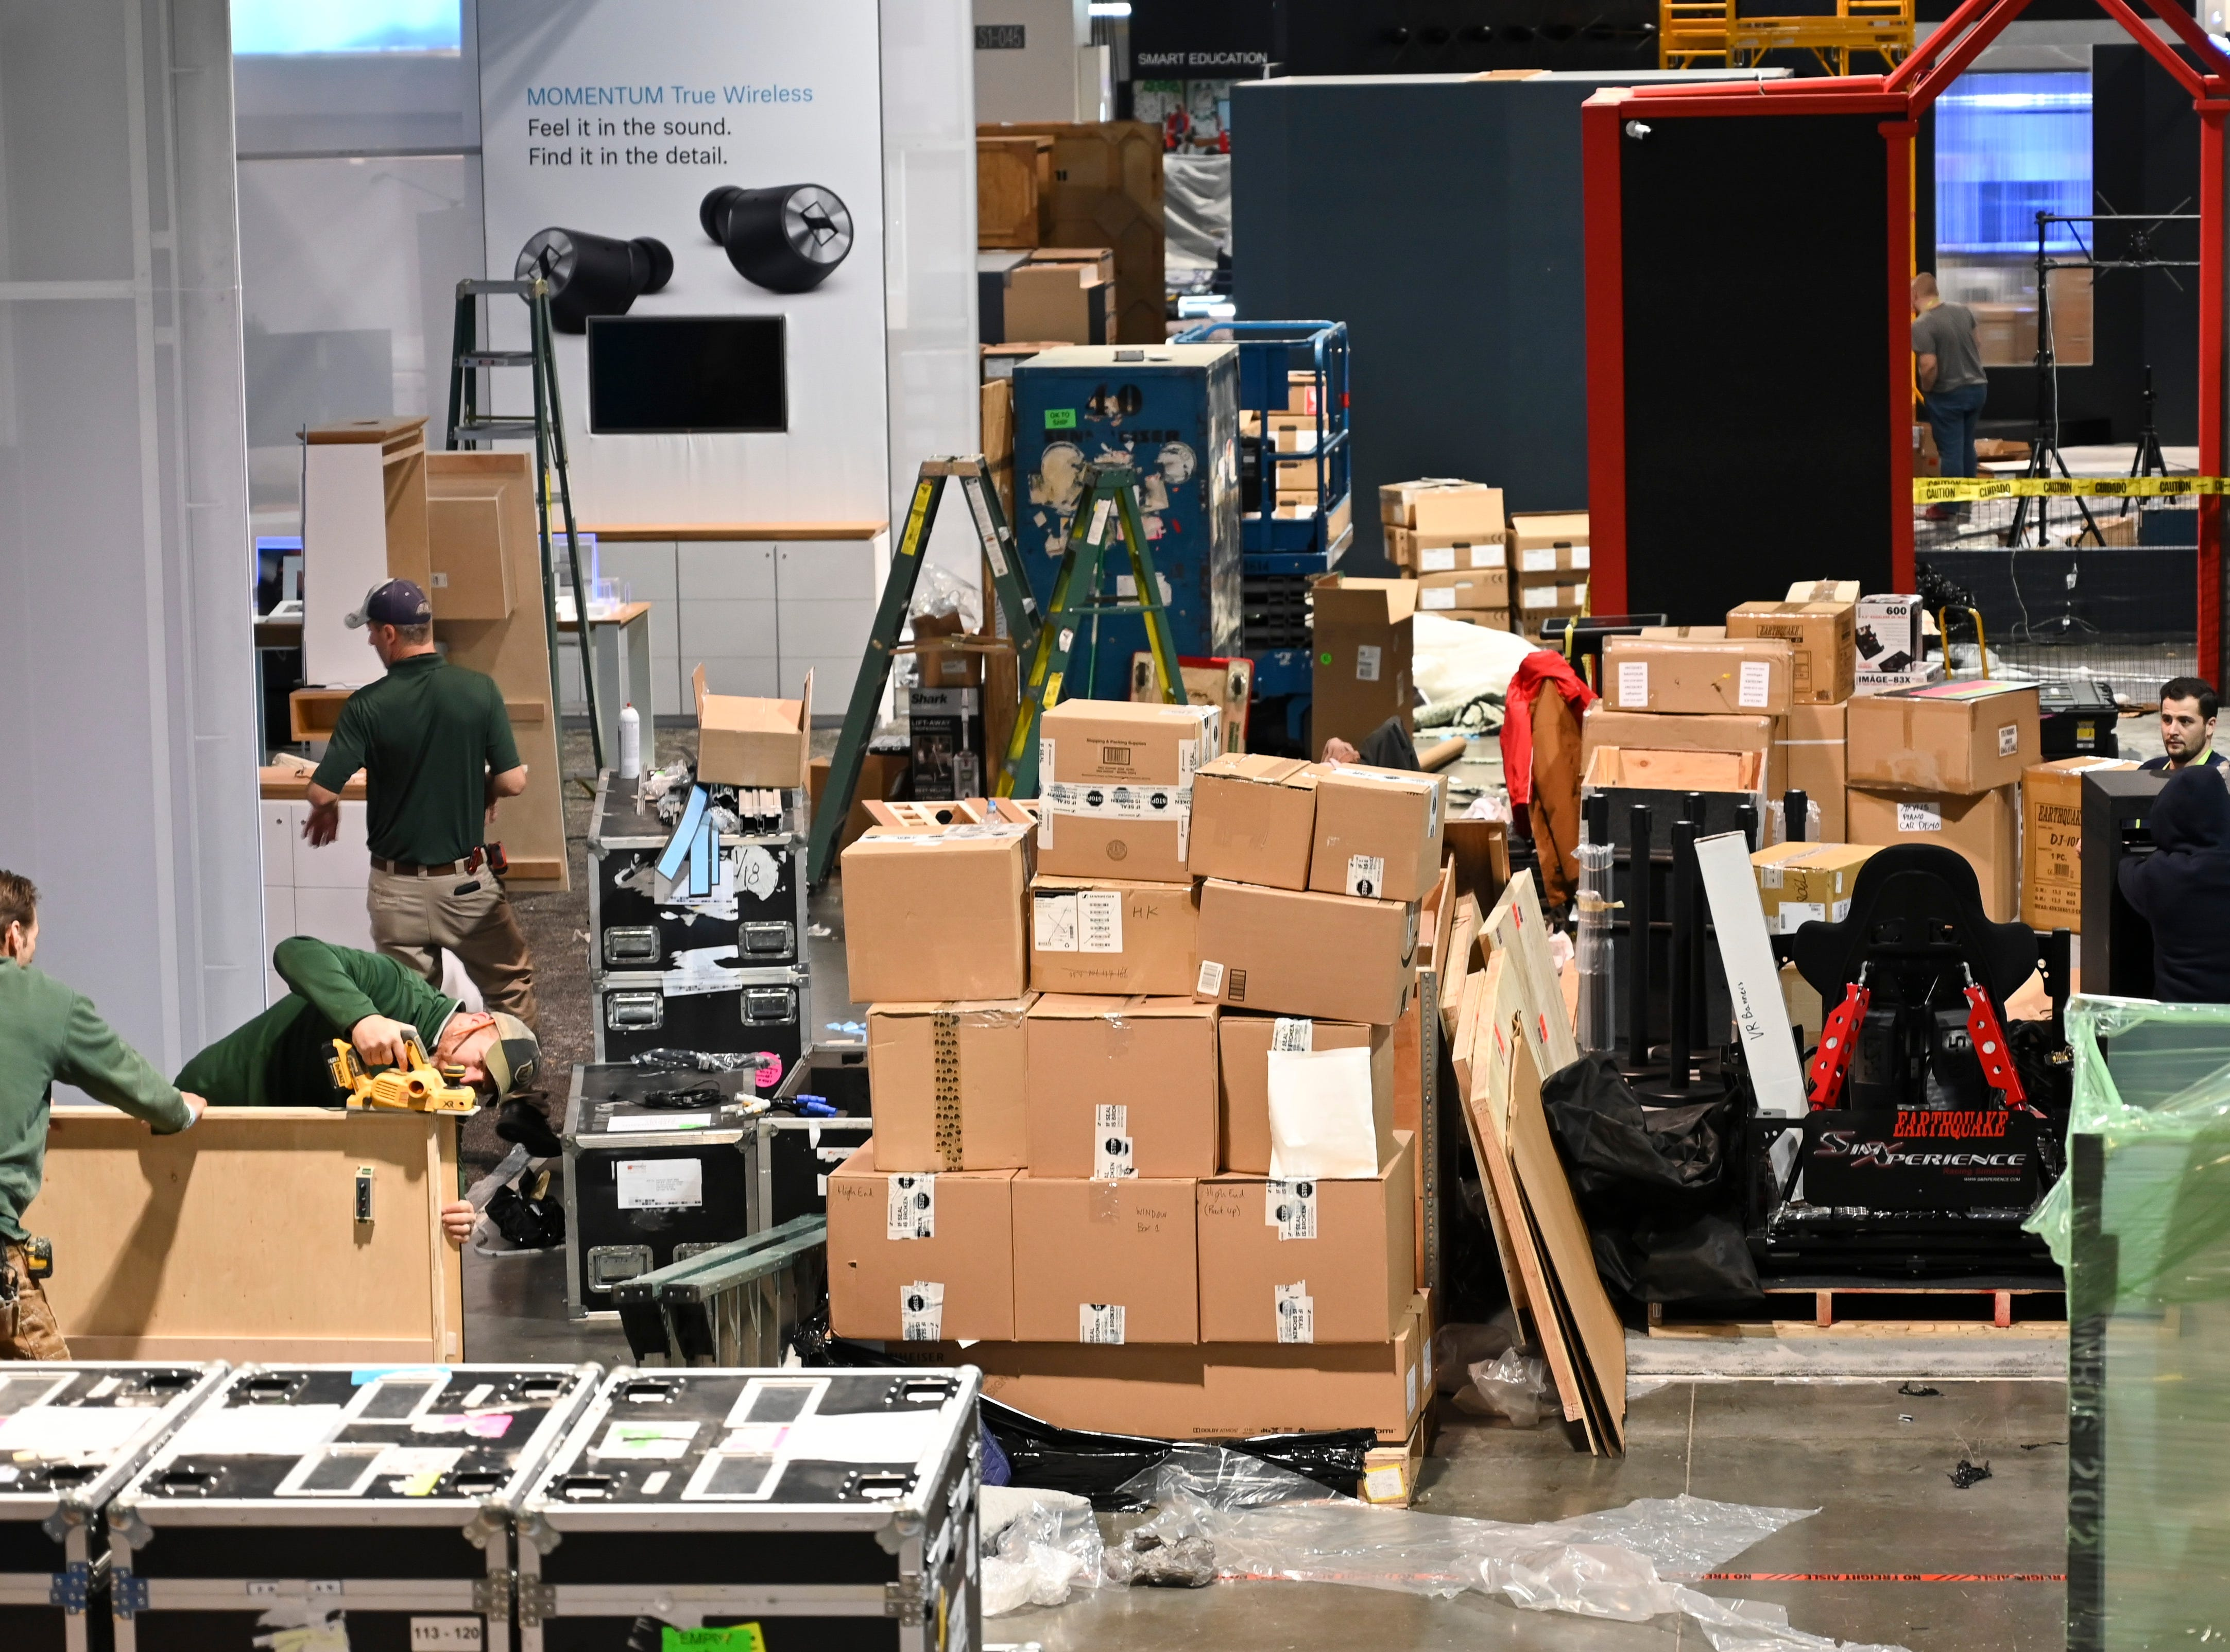 Work crews move in crates and assemble displays in the South Hall of the Las Vegas Convention Center preparing for the Consumer Electronics Show 2019